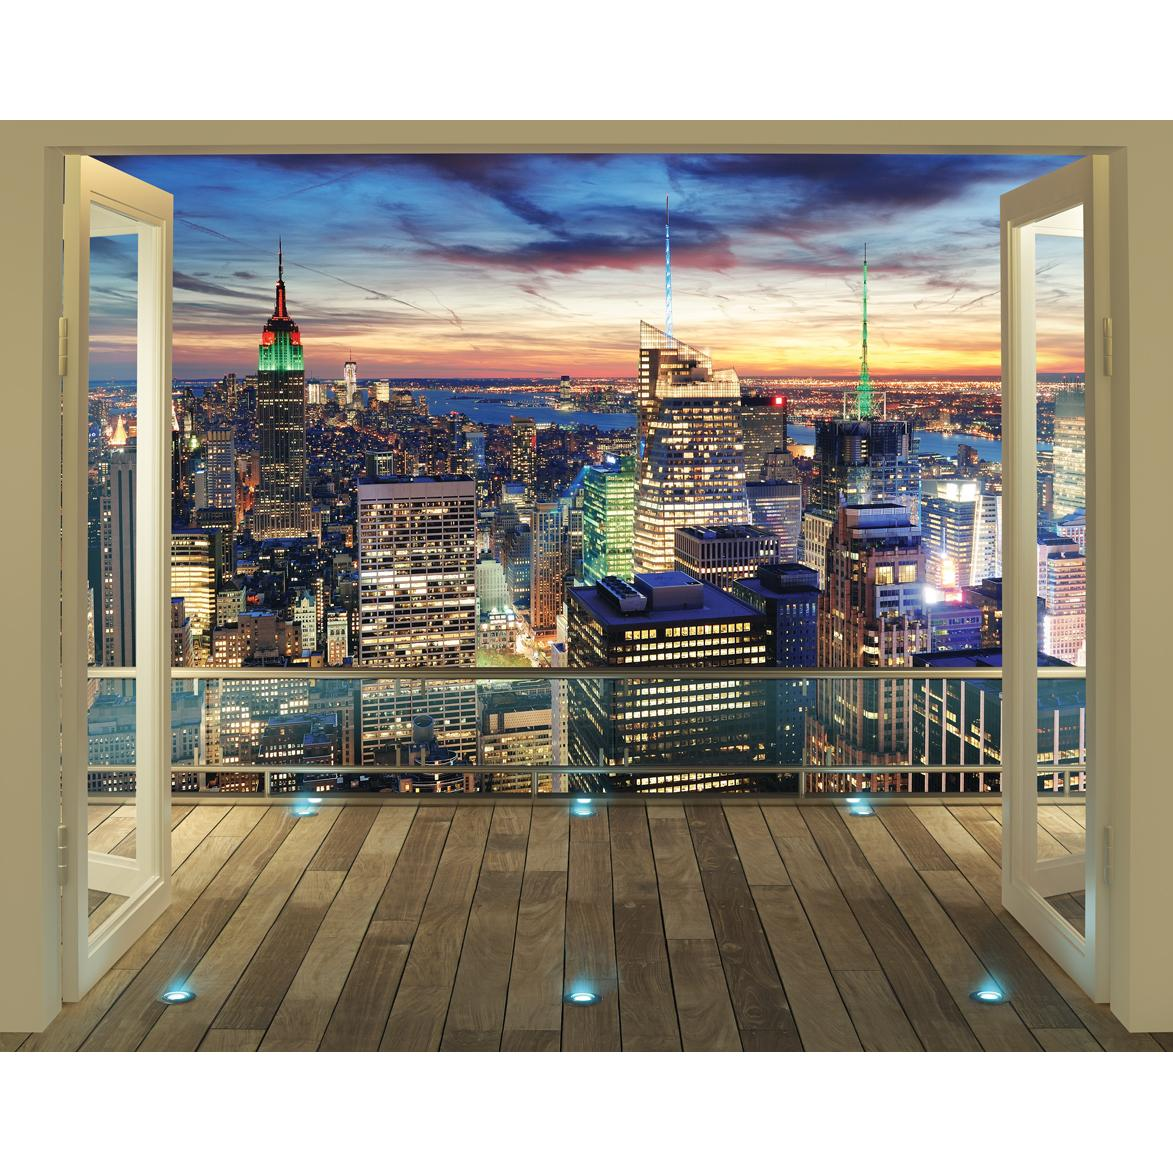 Walltastic York City Skyline Wallpaper Mural Next Day Delivery 1173x1173